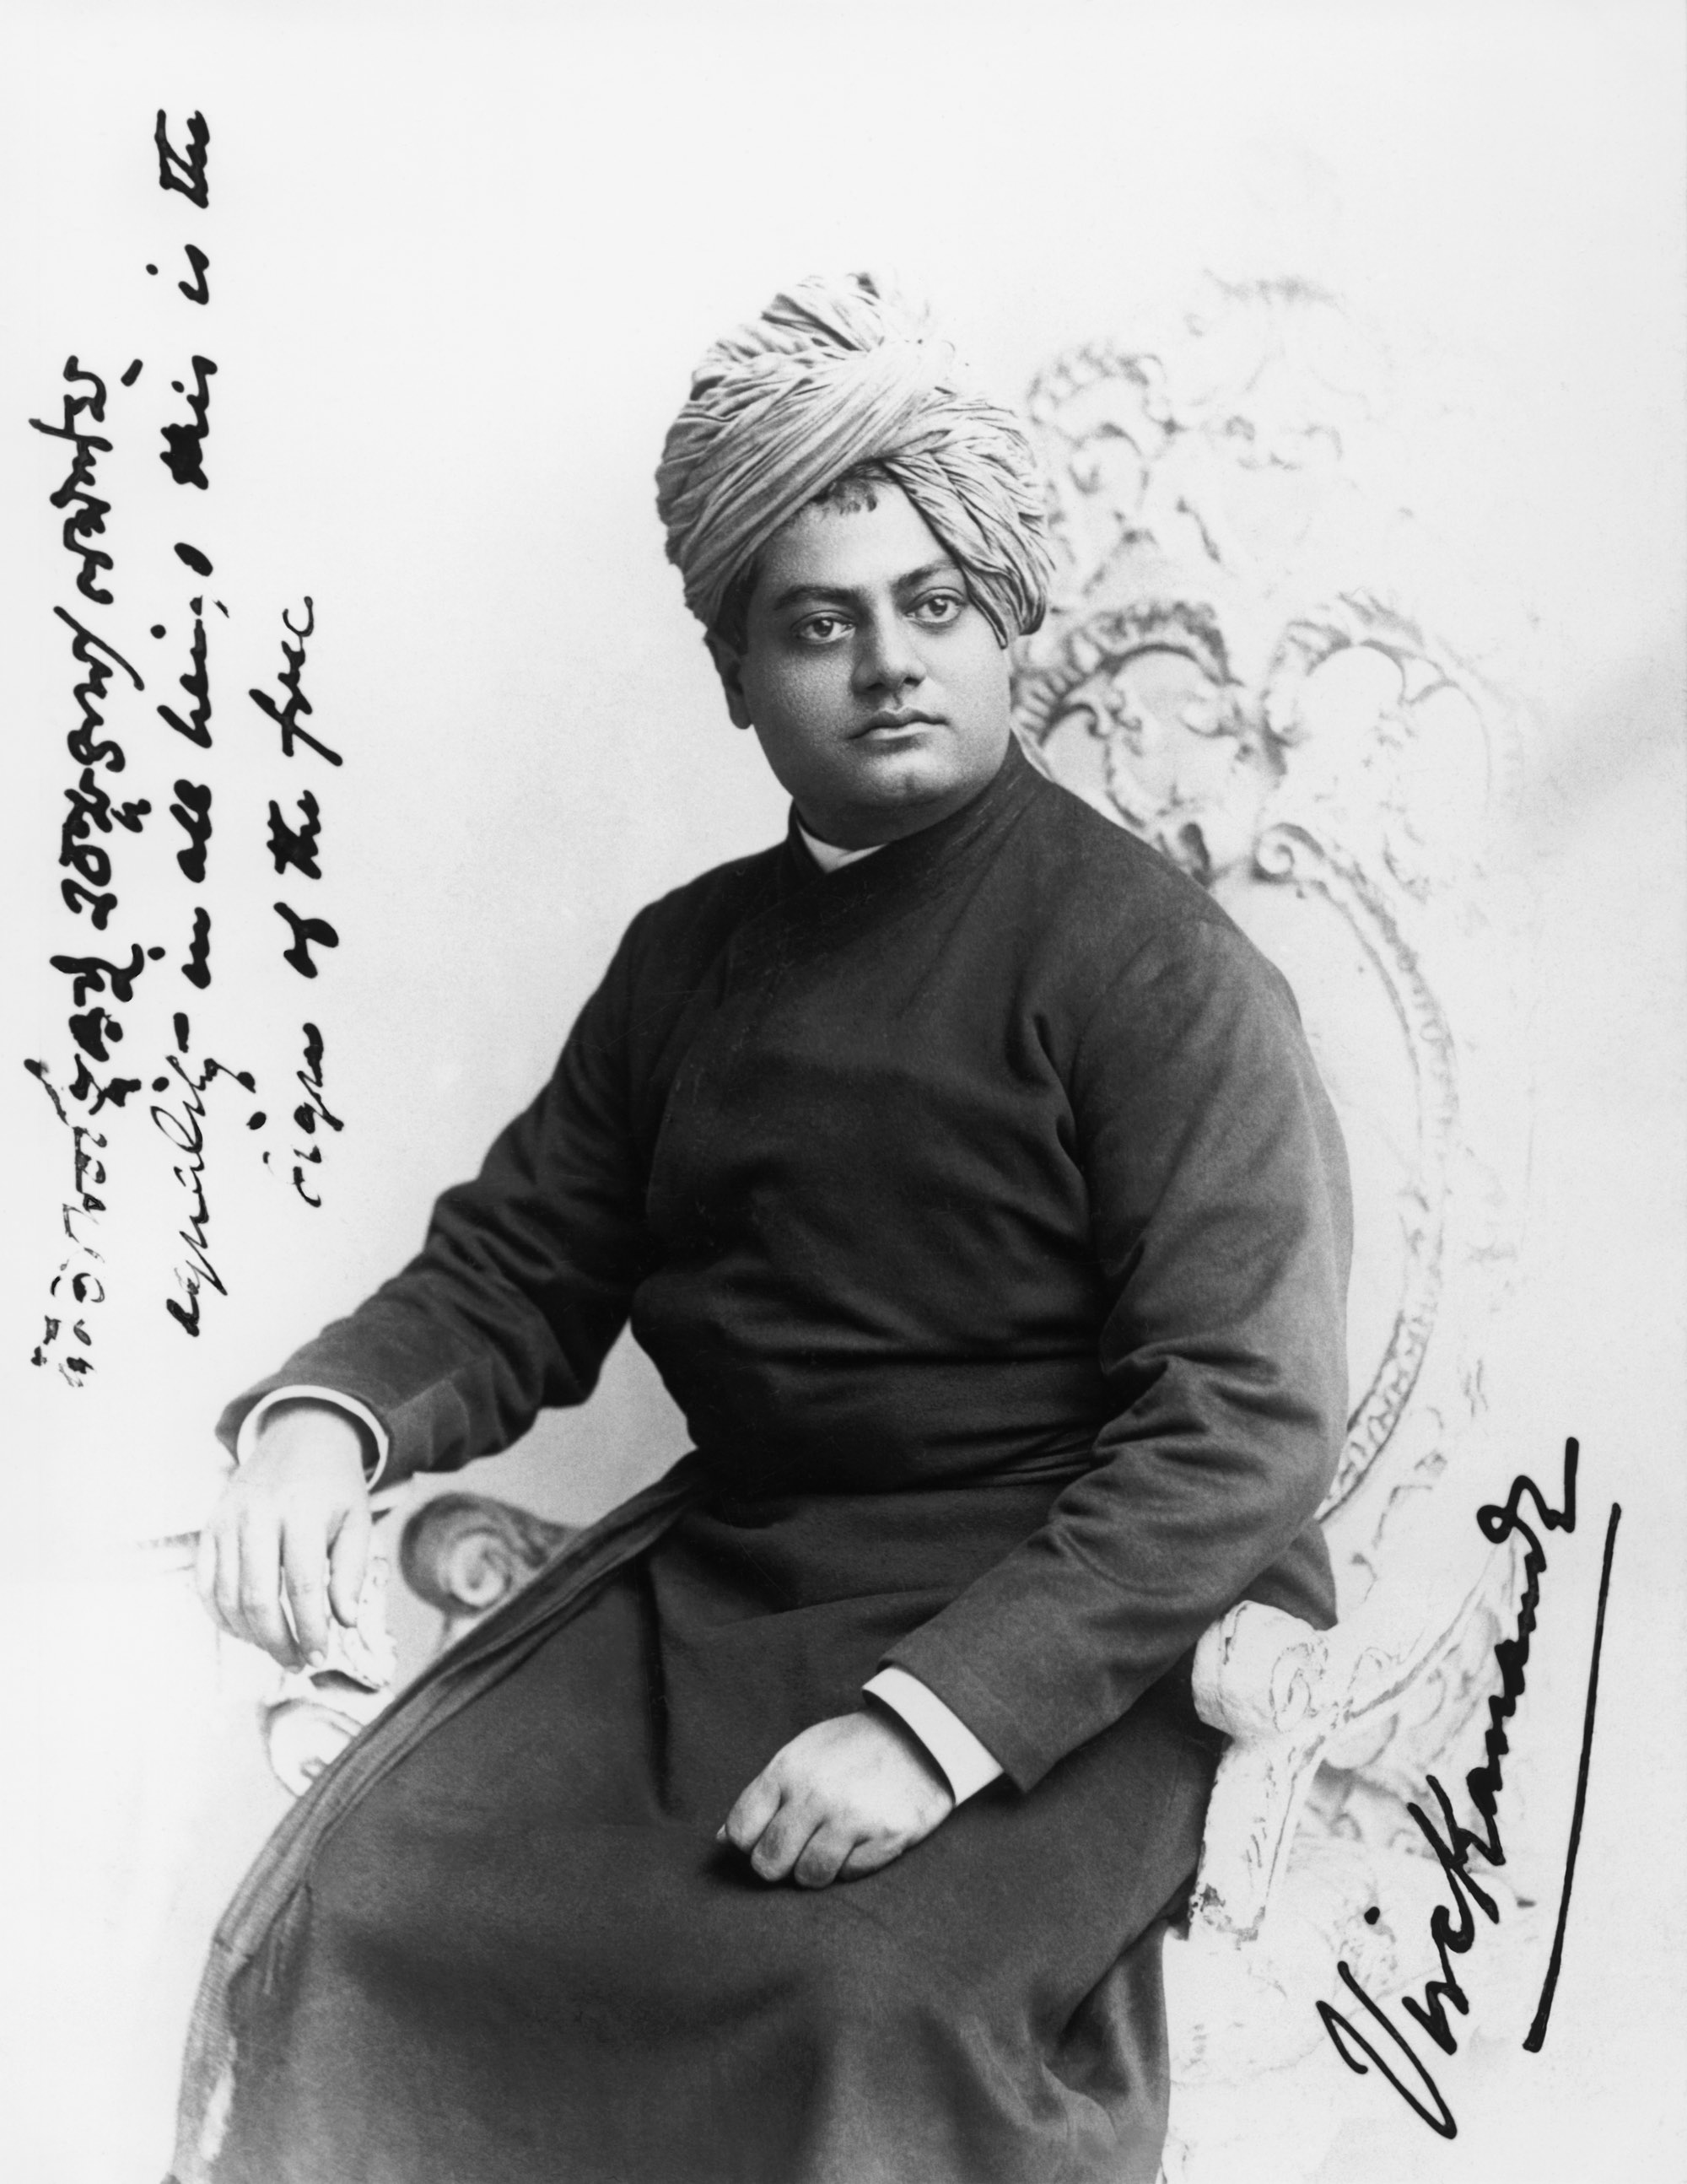 "(#23) Chicago, September 1893. Swamiji's inscription: "" Samatā sarvabhuteṣu etan-muktasya lakṣaṇam.  Equality in all beings this is the sign of the free."""